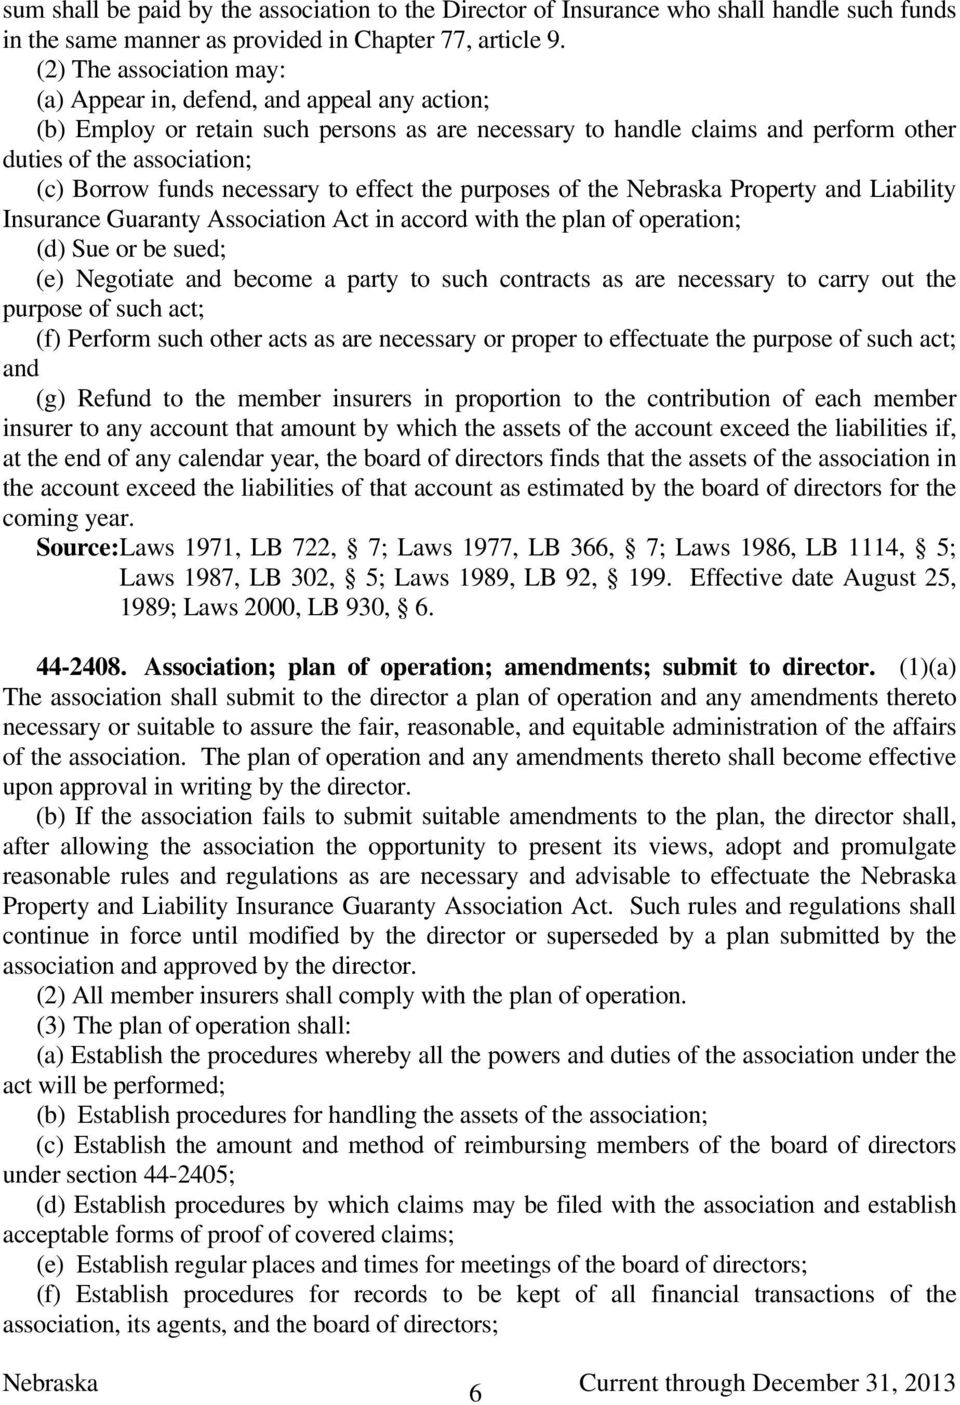 funds necessary to effect the purposes of the Nebraska Property and Liability Insurance Guaranty Association Act in accord with the plan of operation; (d) Sue or be sued; (e) Negotiate and become a